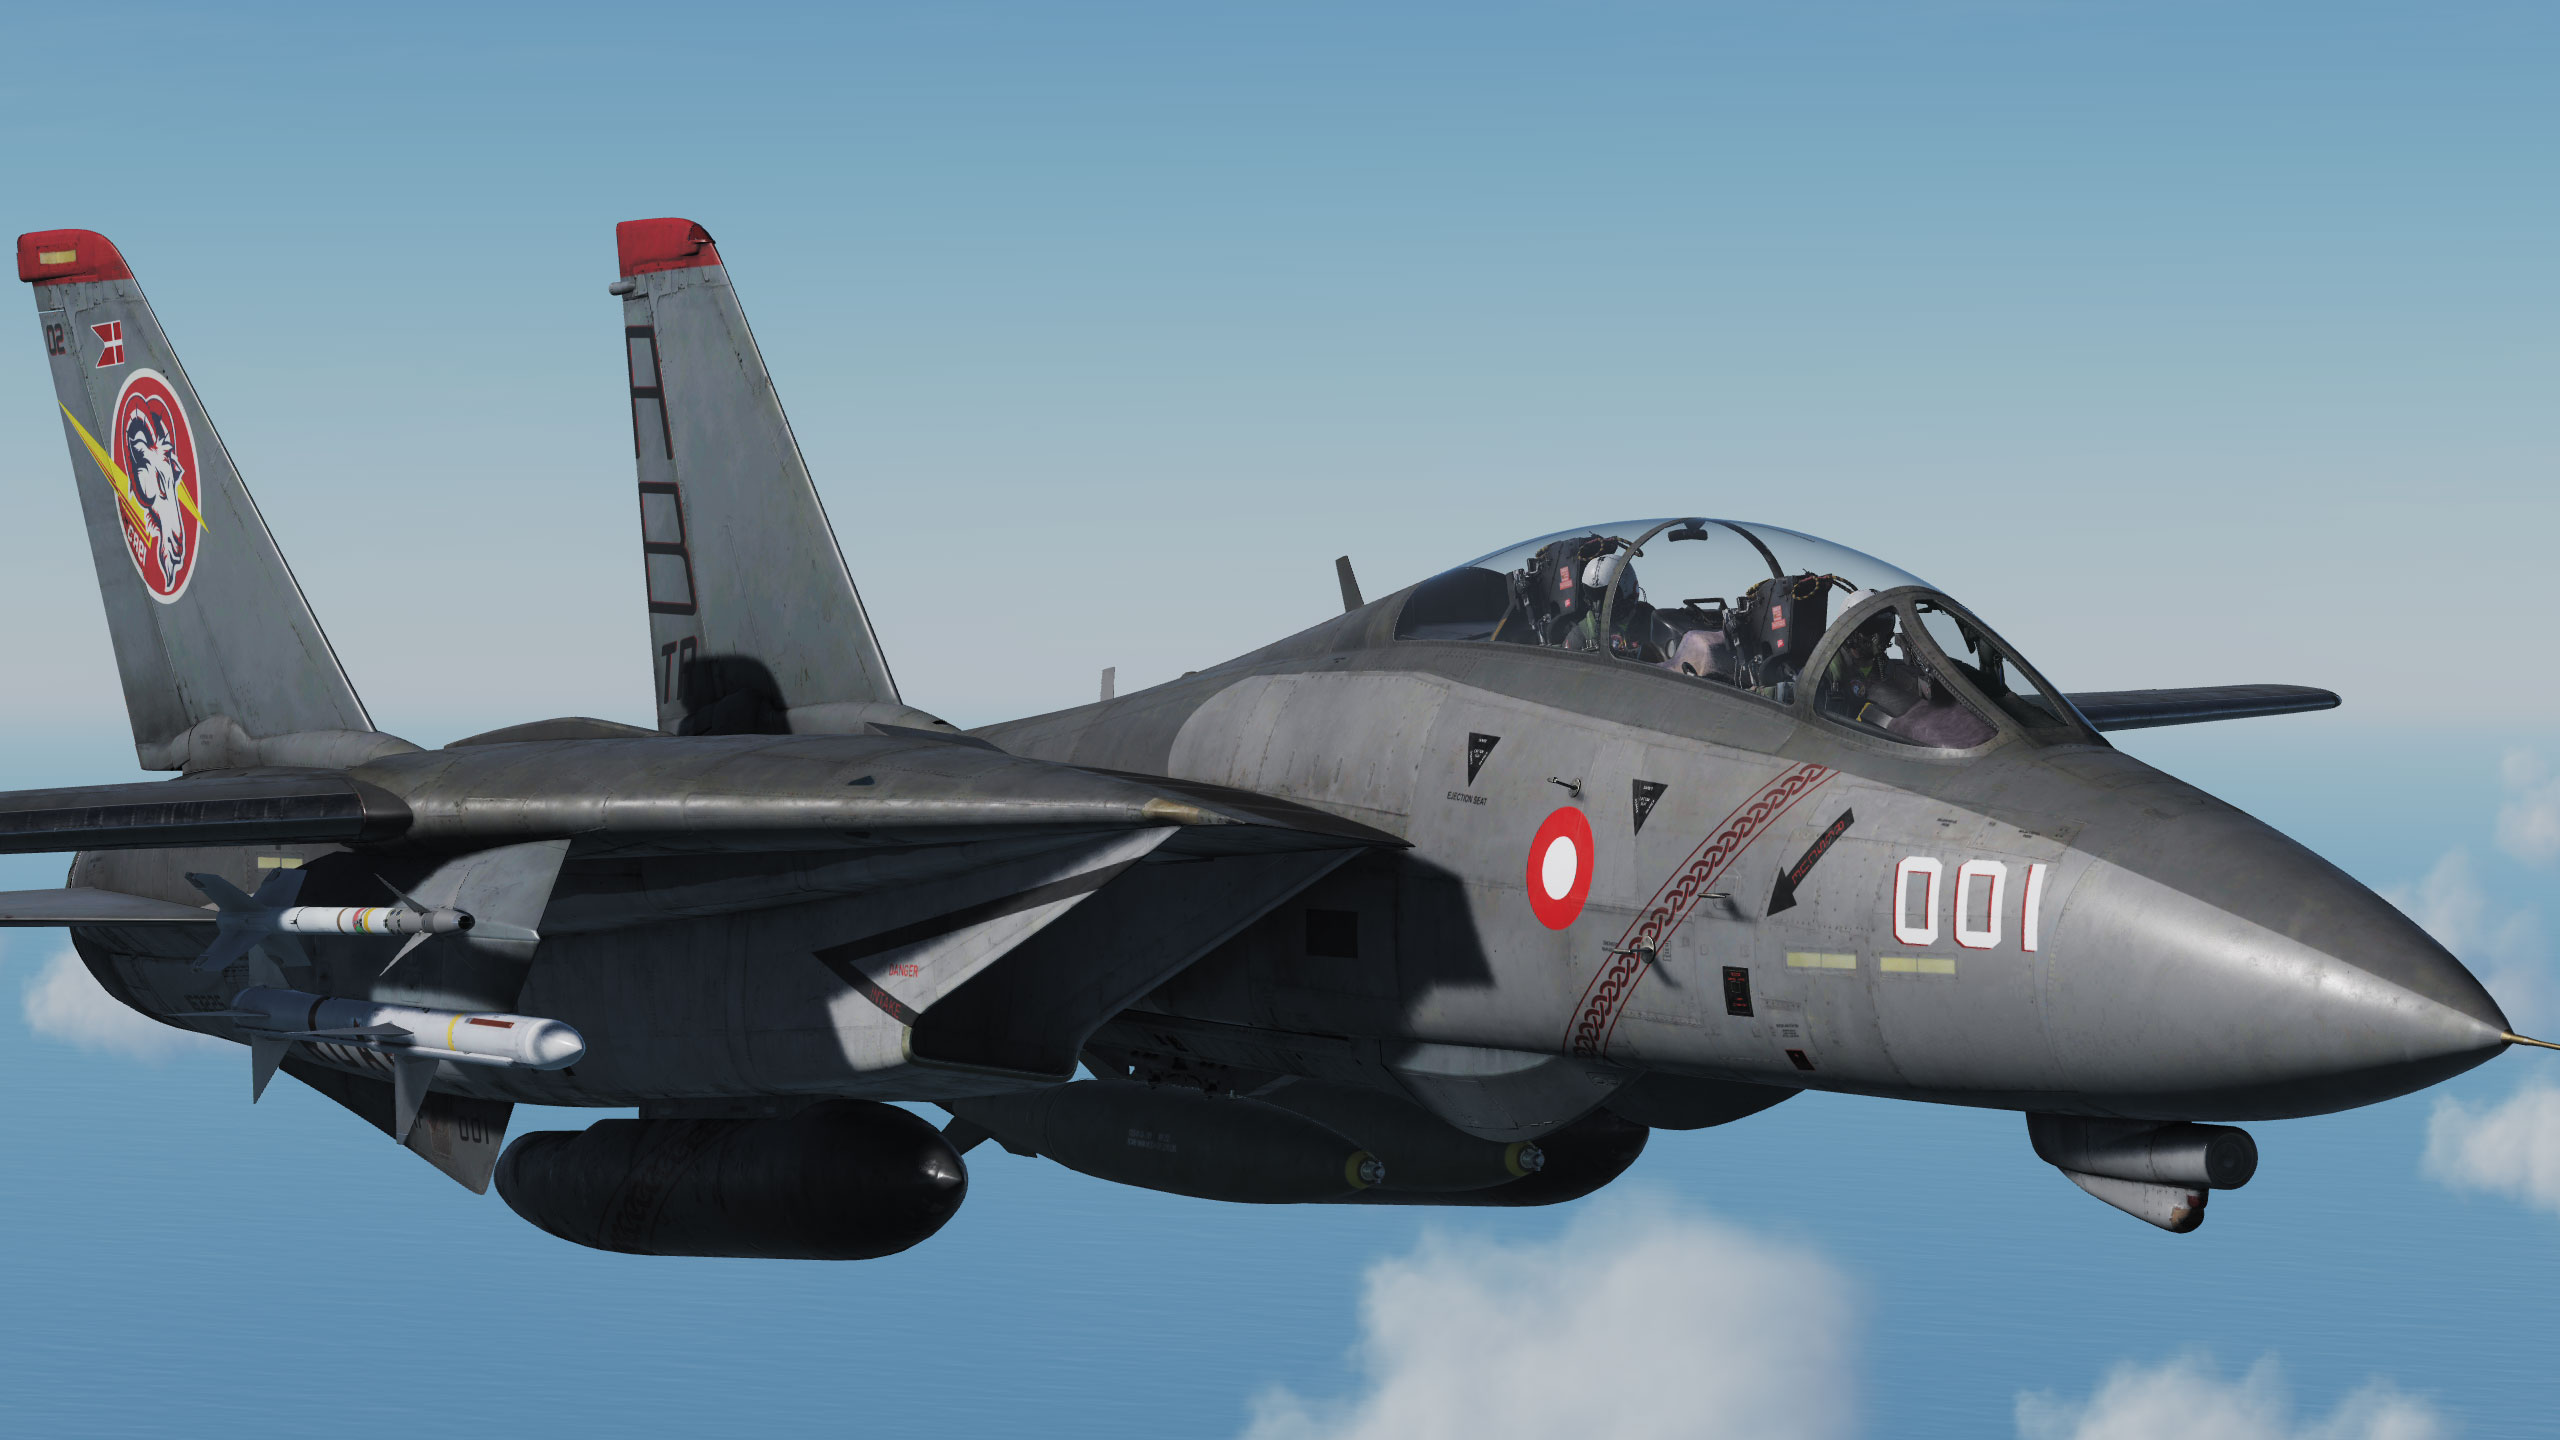 Danish fictive RDAF skin for the F-14 Tomcat